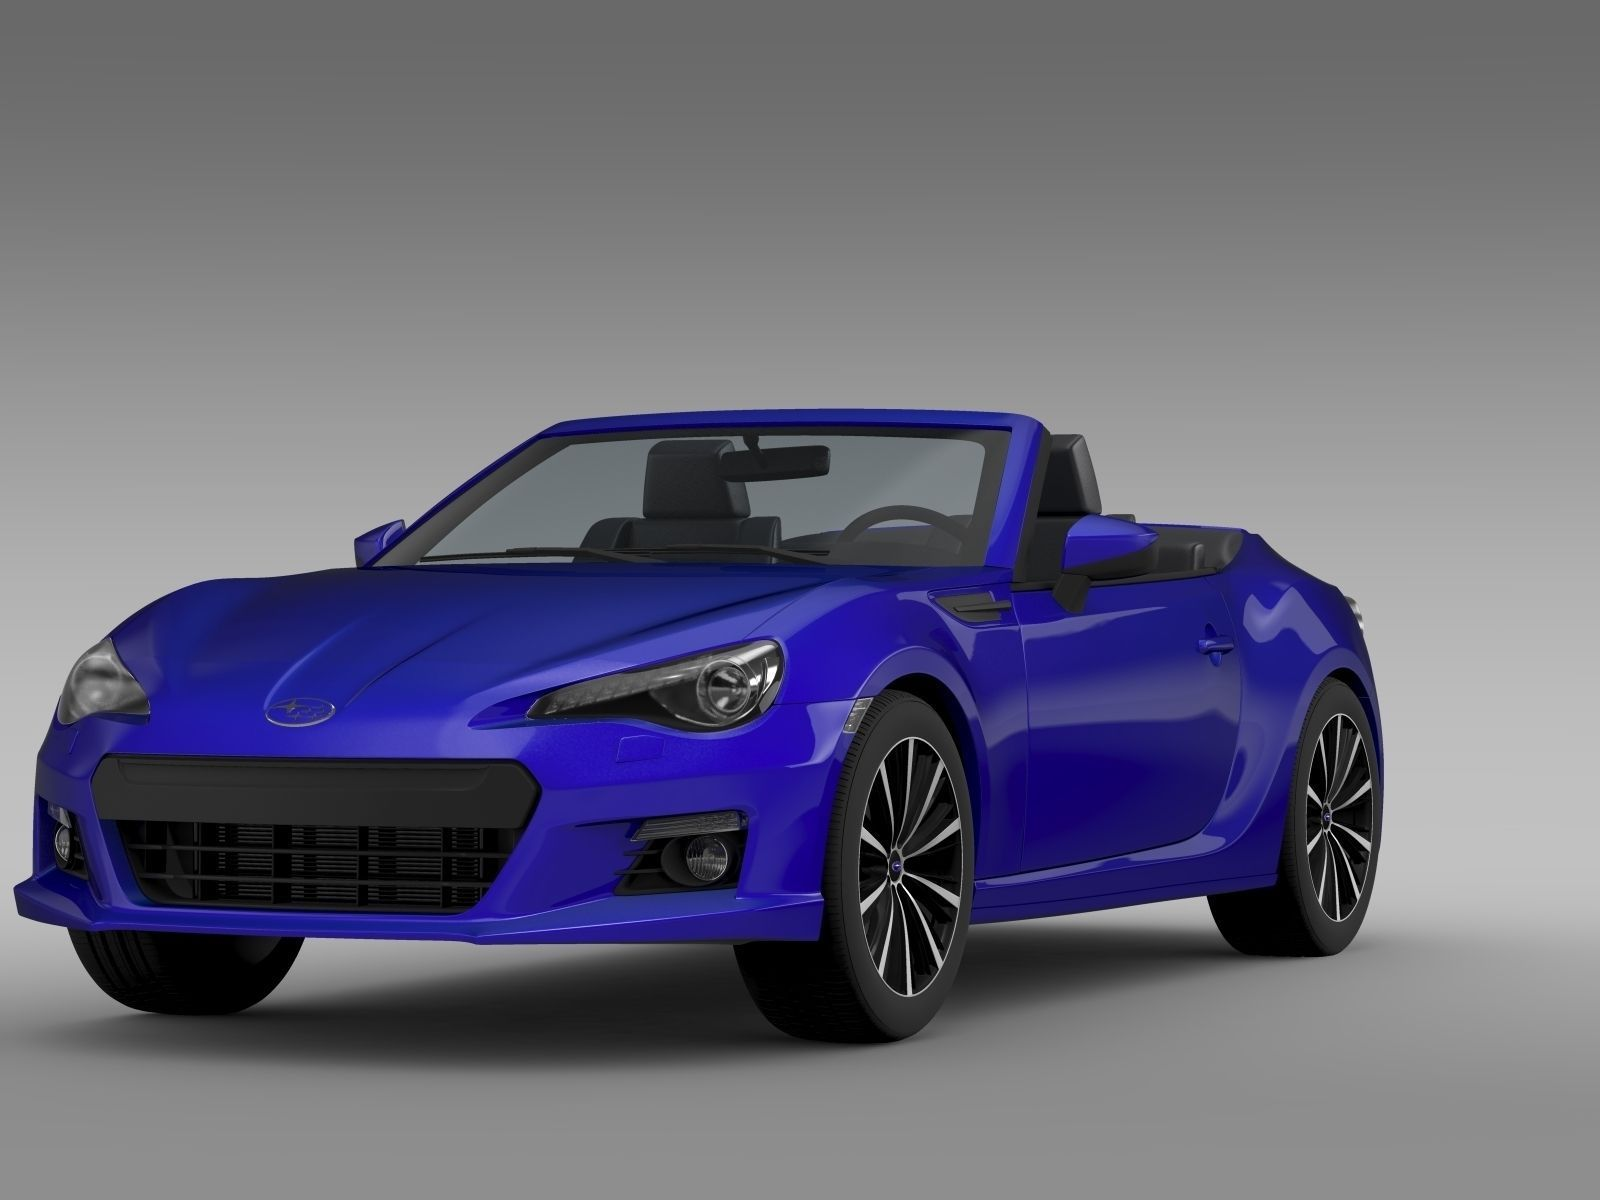 subaru brz zc6 cabrio 2015 3d model max obj 3ds fbx c4d lwo lw lws. Black Bedroom Furniture Sets. Home Design Ideas